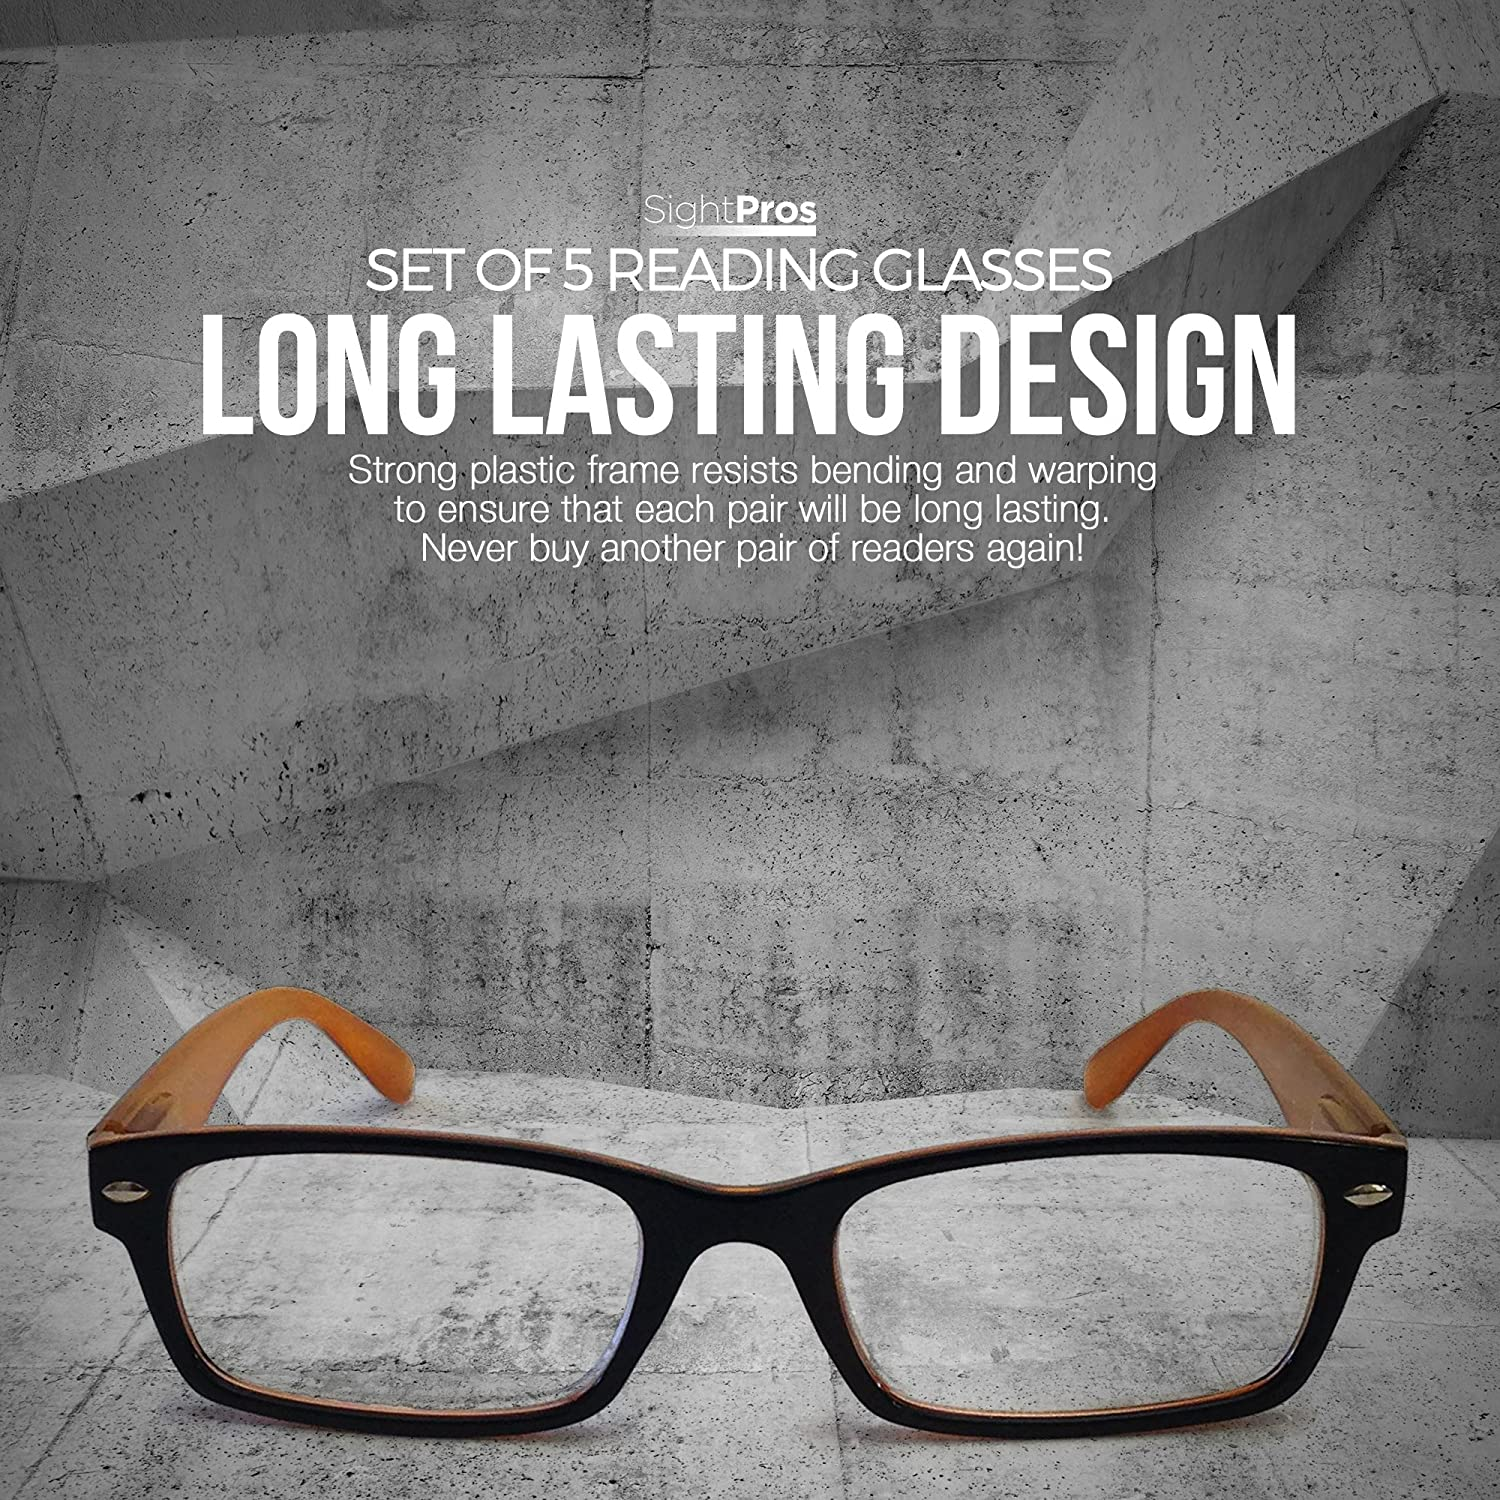 Amazon.com: SightPros Reading Glasses - See Clearly up close ...